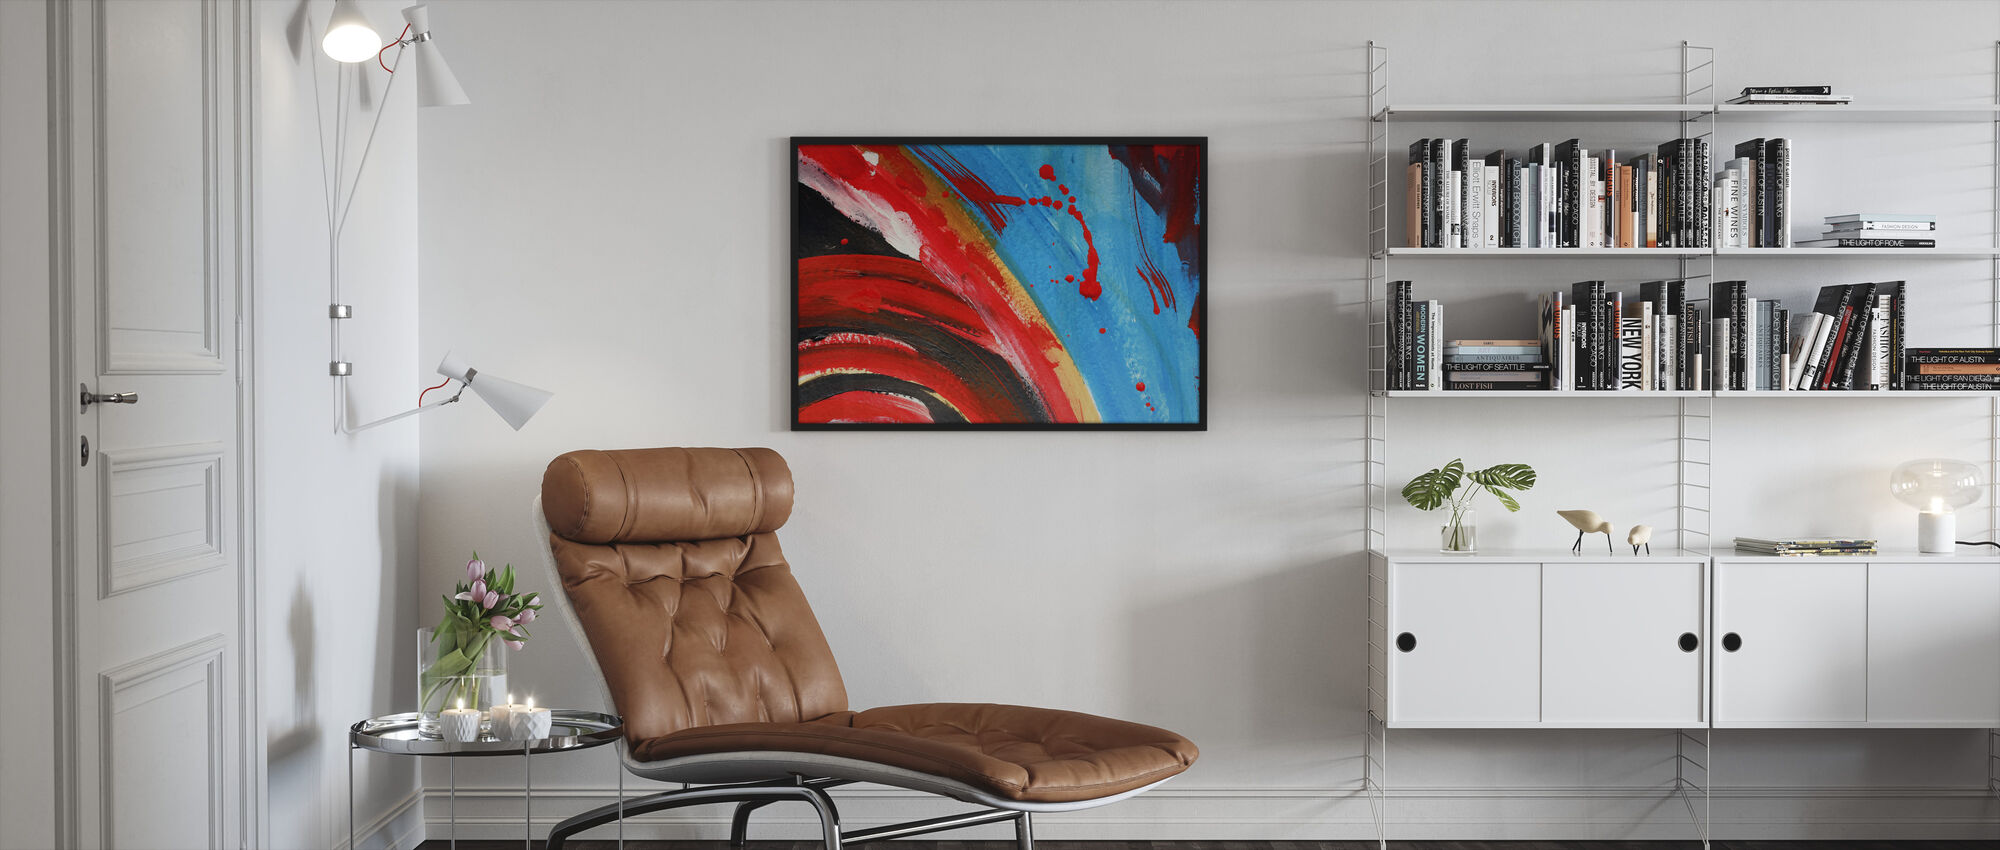 Abstract Painting - Framed print - Living Room